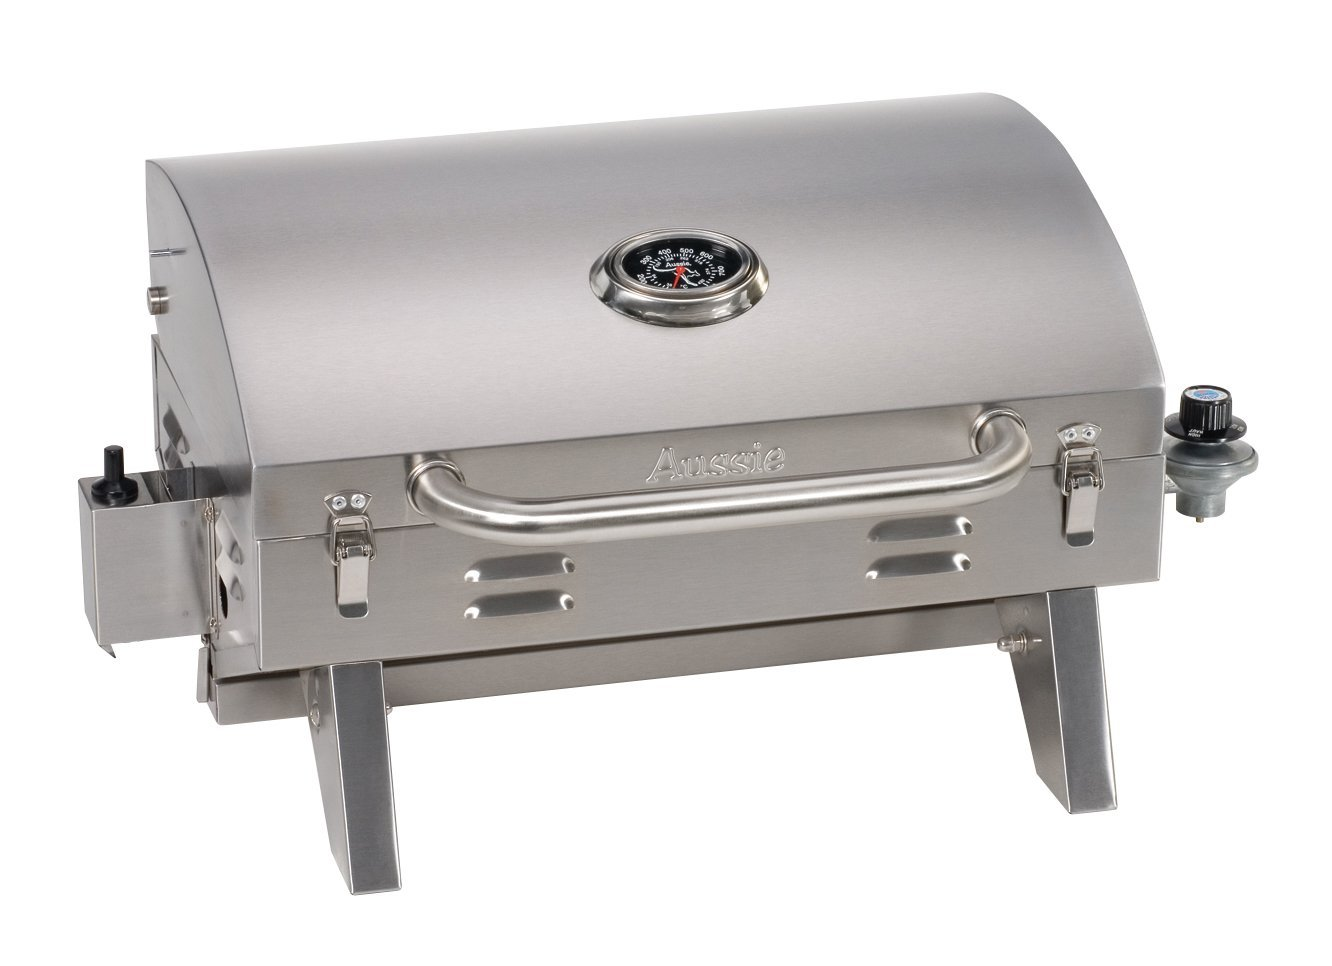 Portable Gas Grill Review Aussie 205 Stainless Steel Tabletop Gas Grill